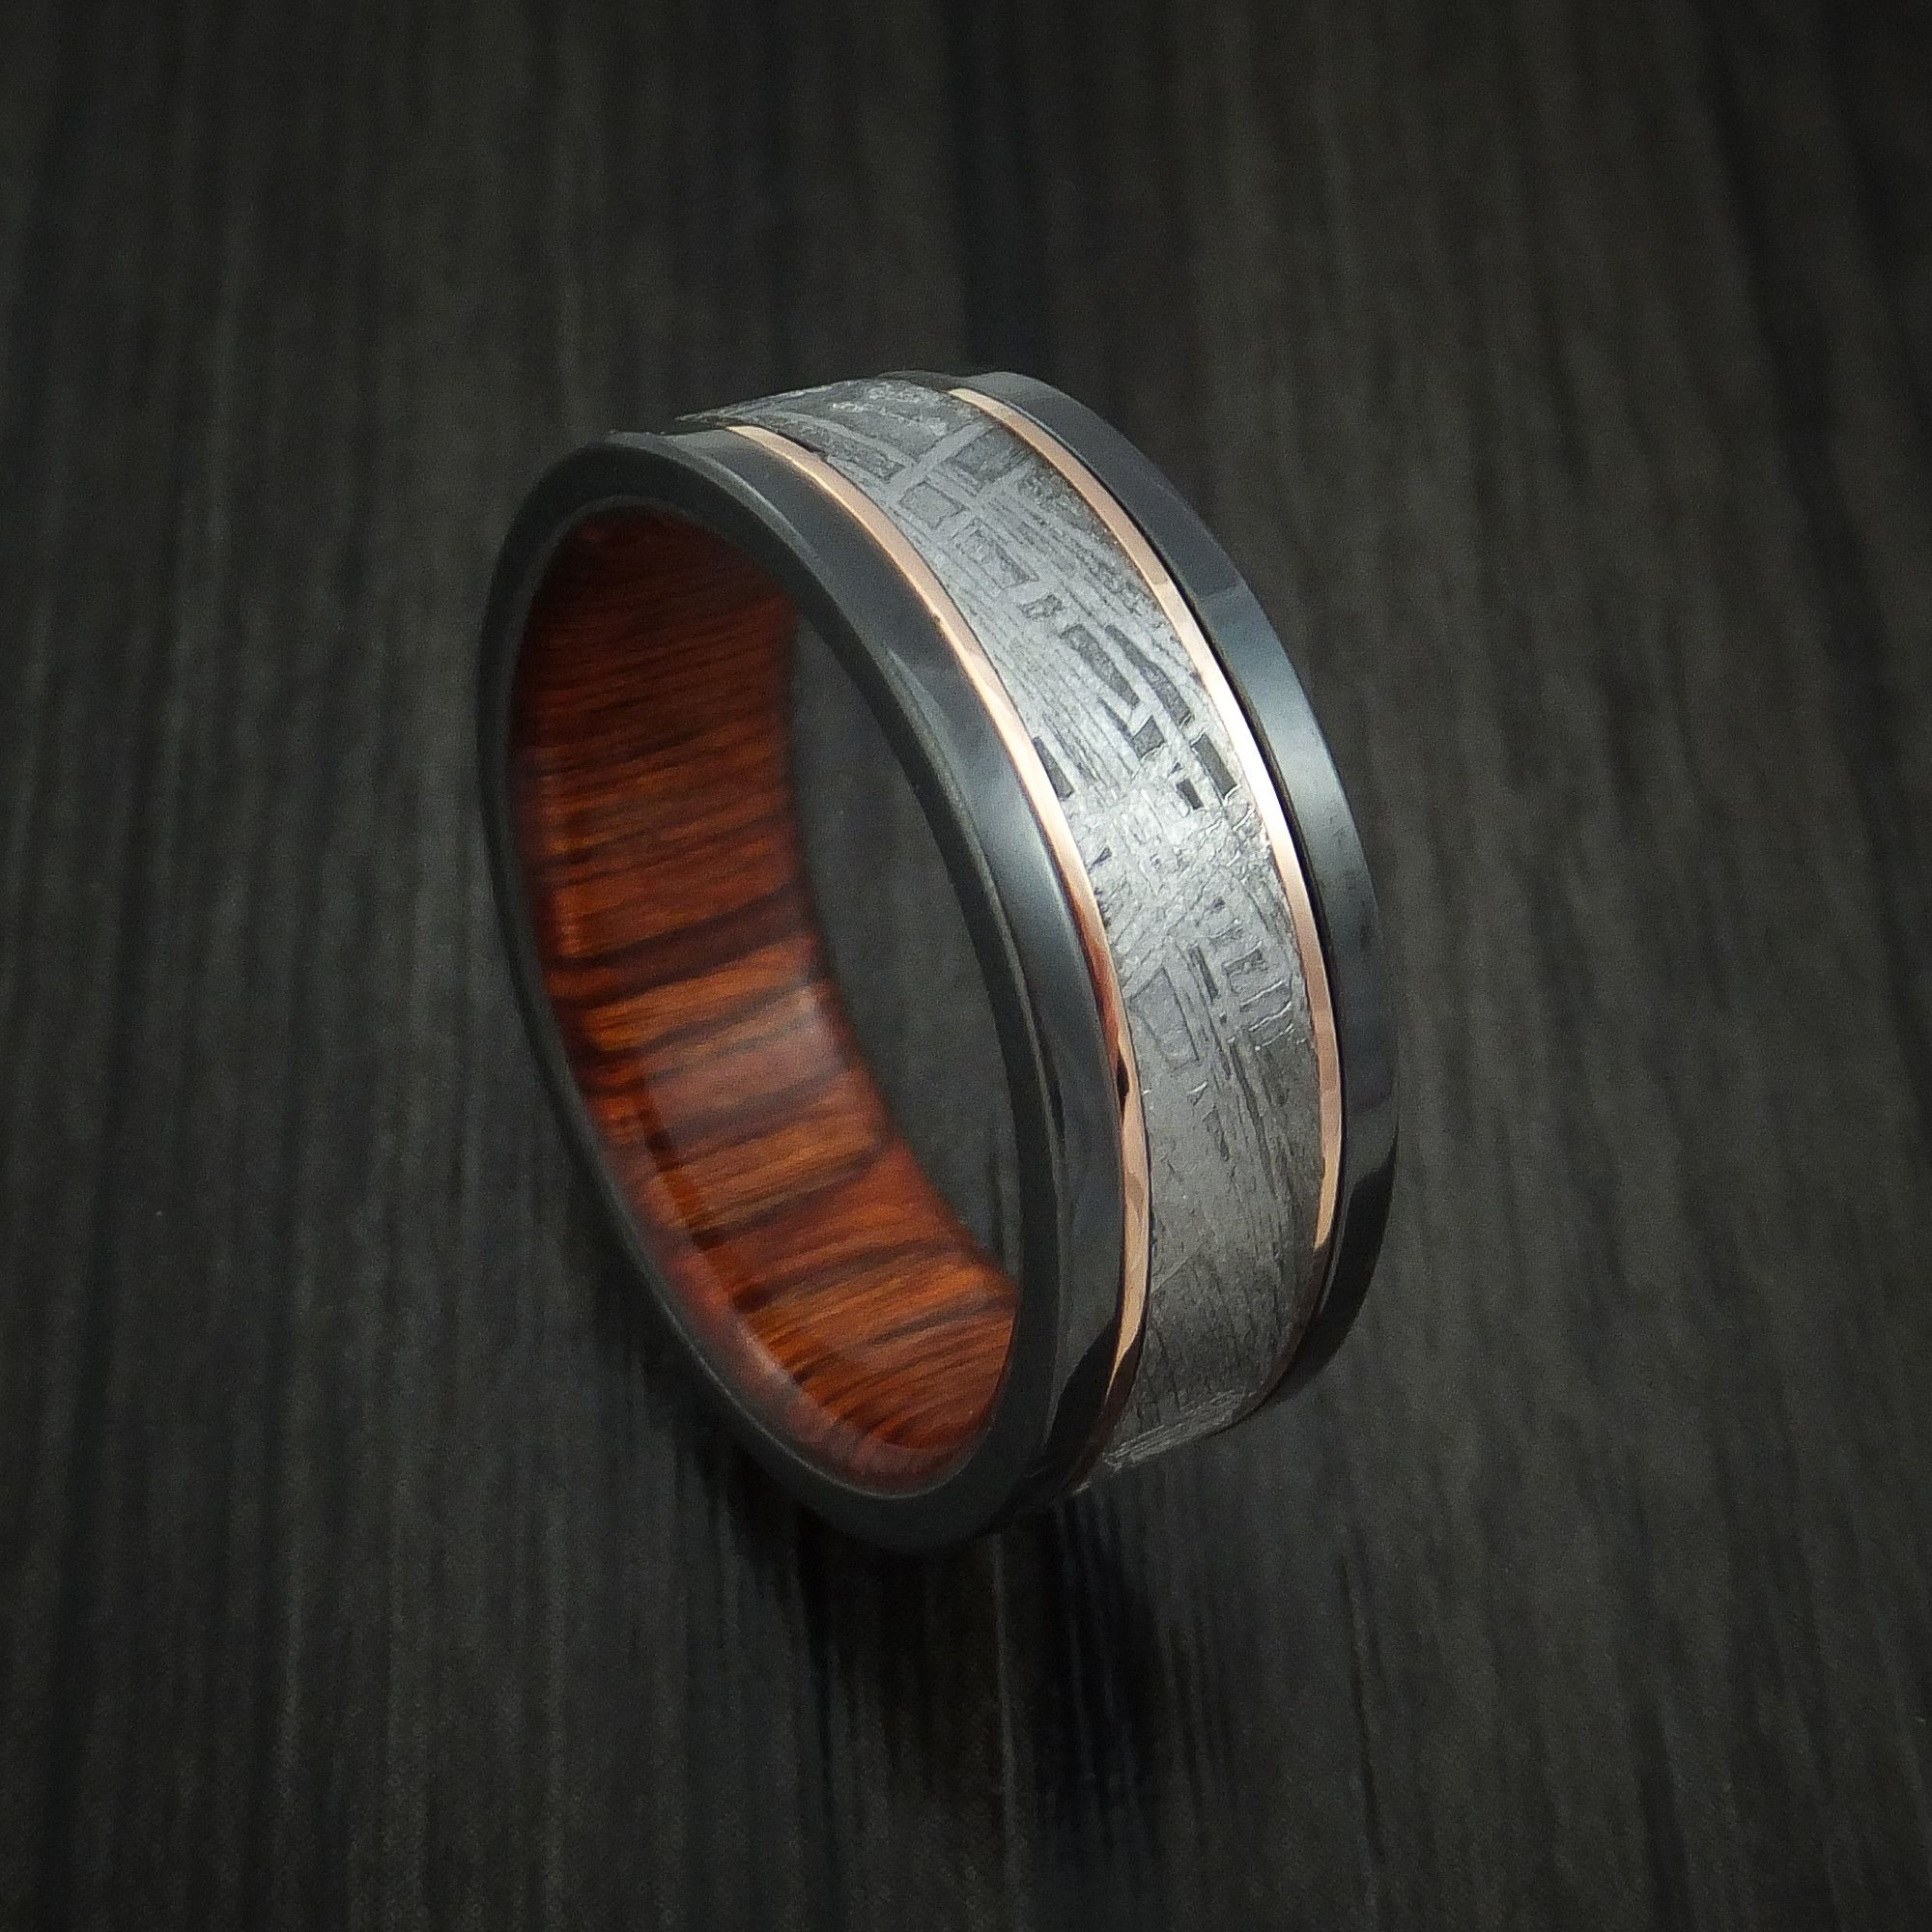 rings best petrified of mens with wedding wood awesome cake wooden alsayegh pics nature bridal